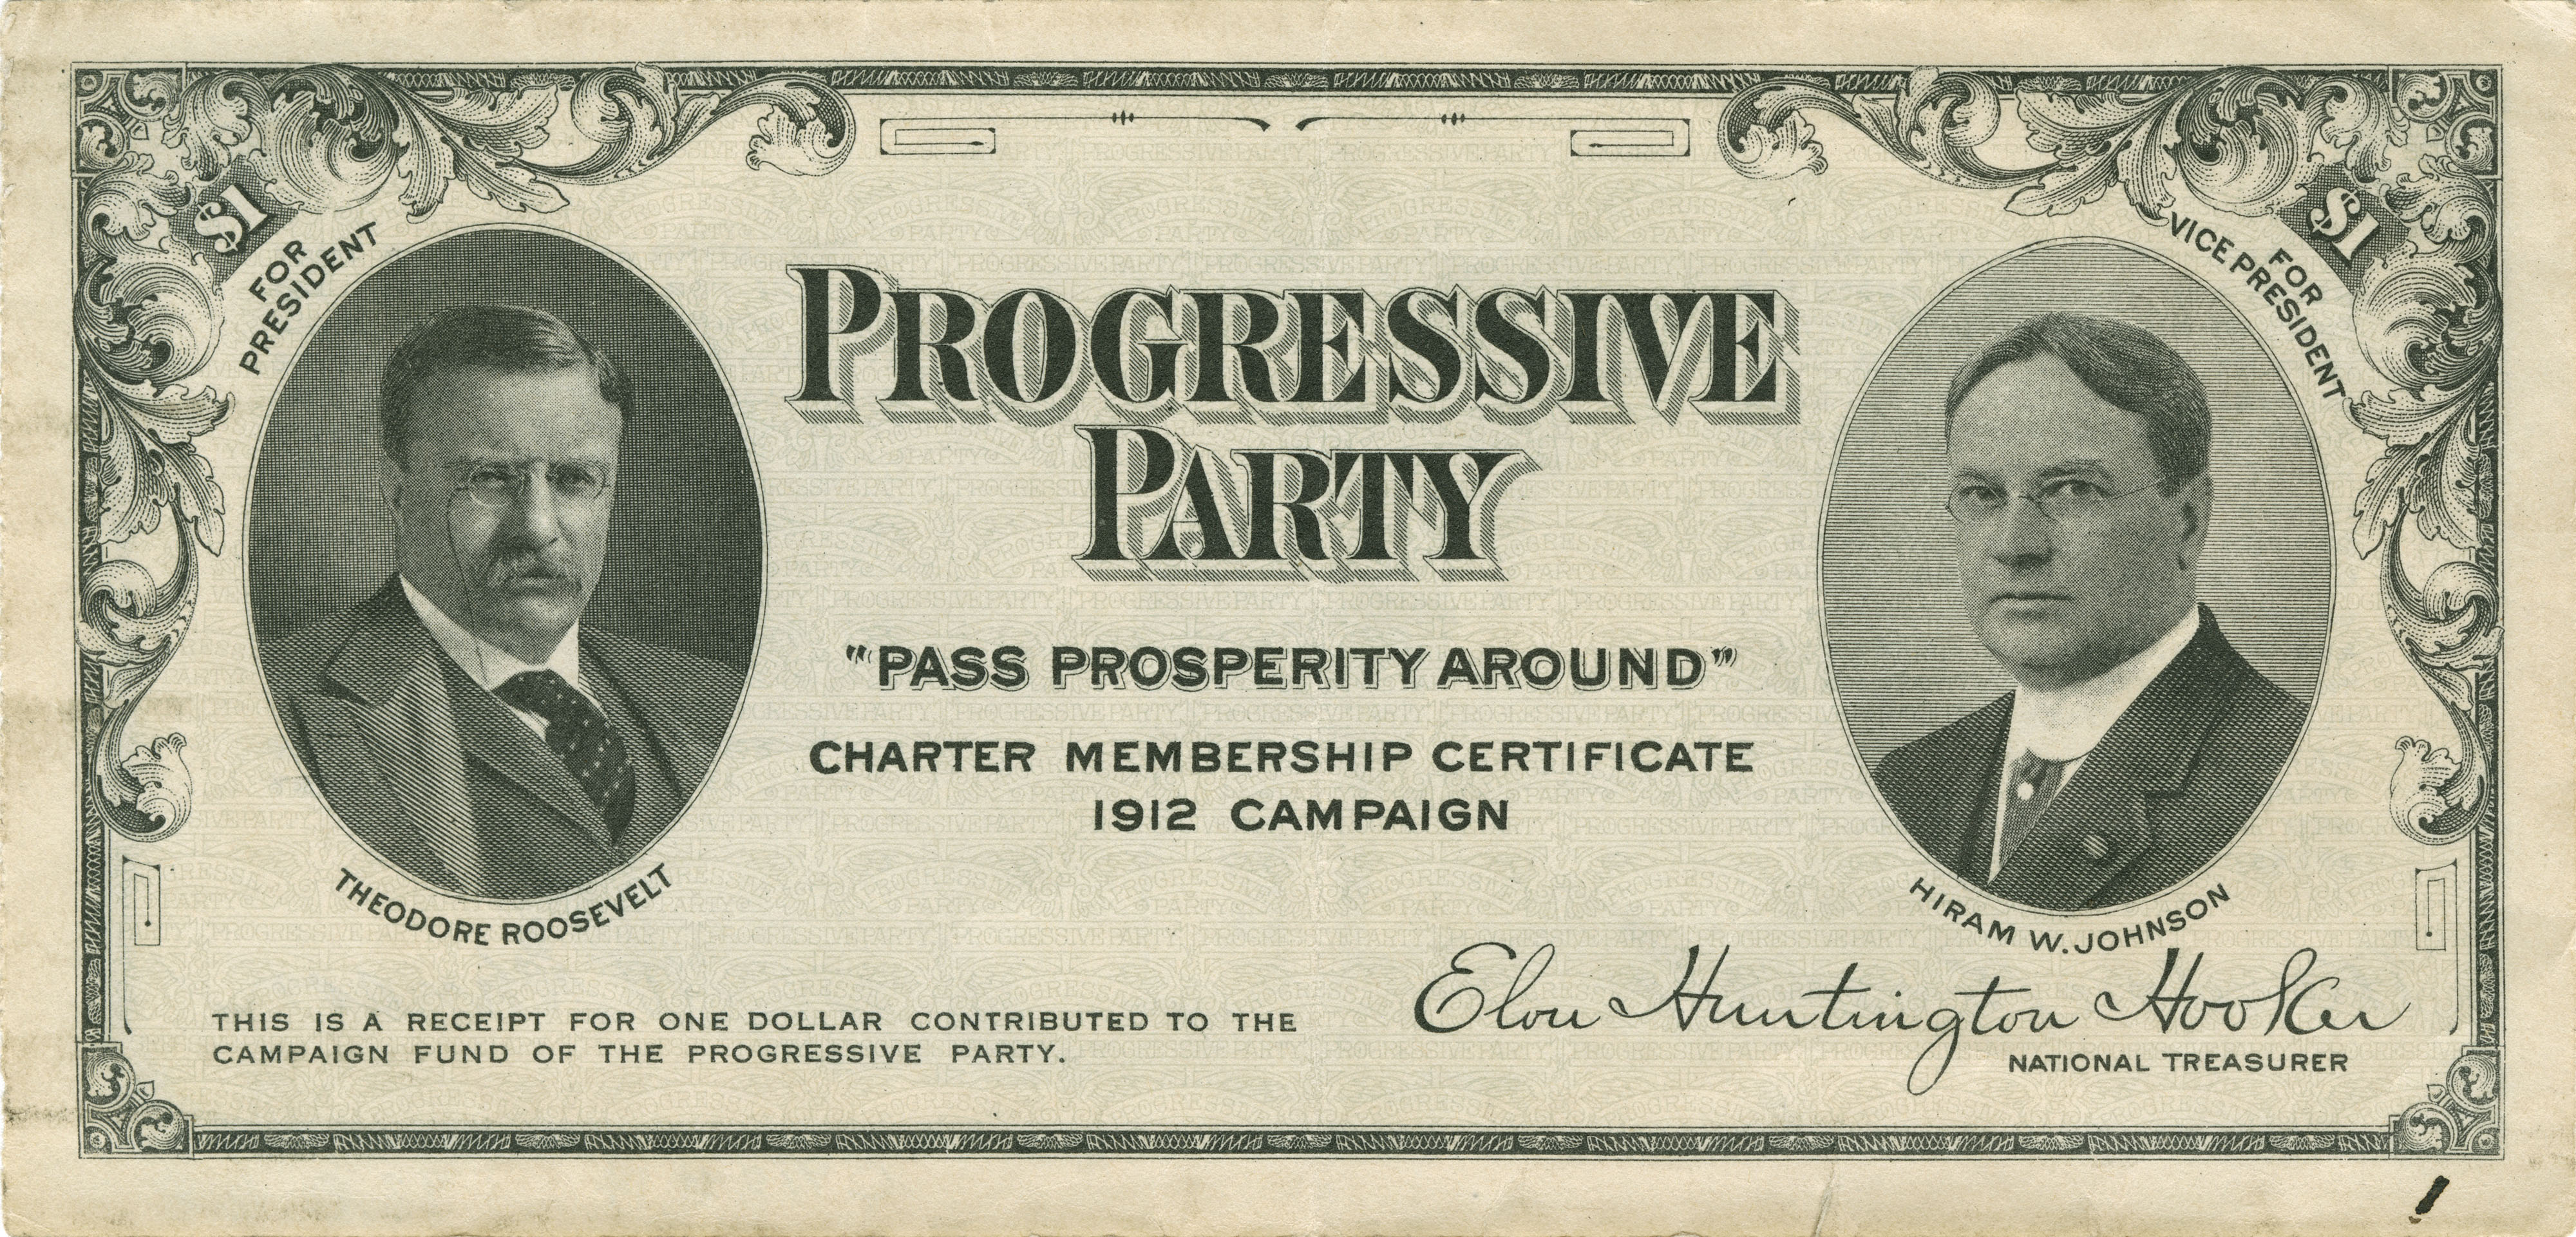 1920 reforms - by 1920 over half of school aged children were going to school 1915 - 1920 - also in the progressive era of education reform, former professor charles brough was a supporter of progressive education as governor from 1917 to 1921.